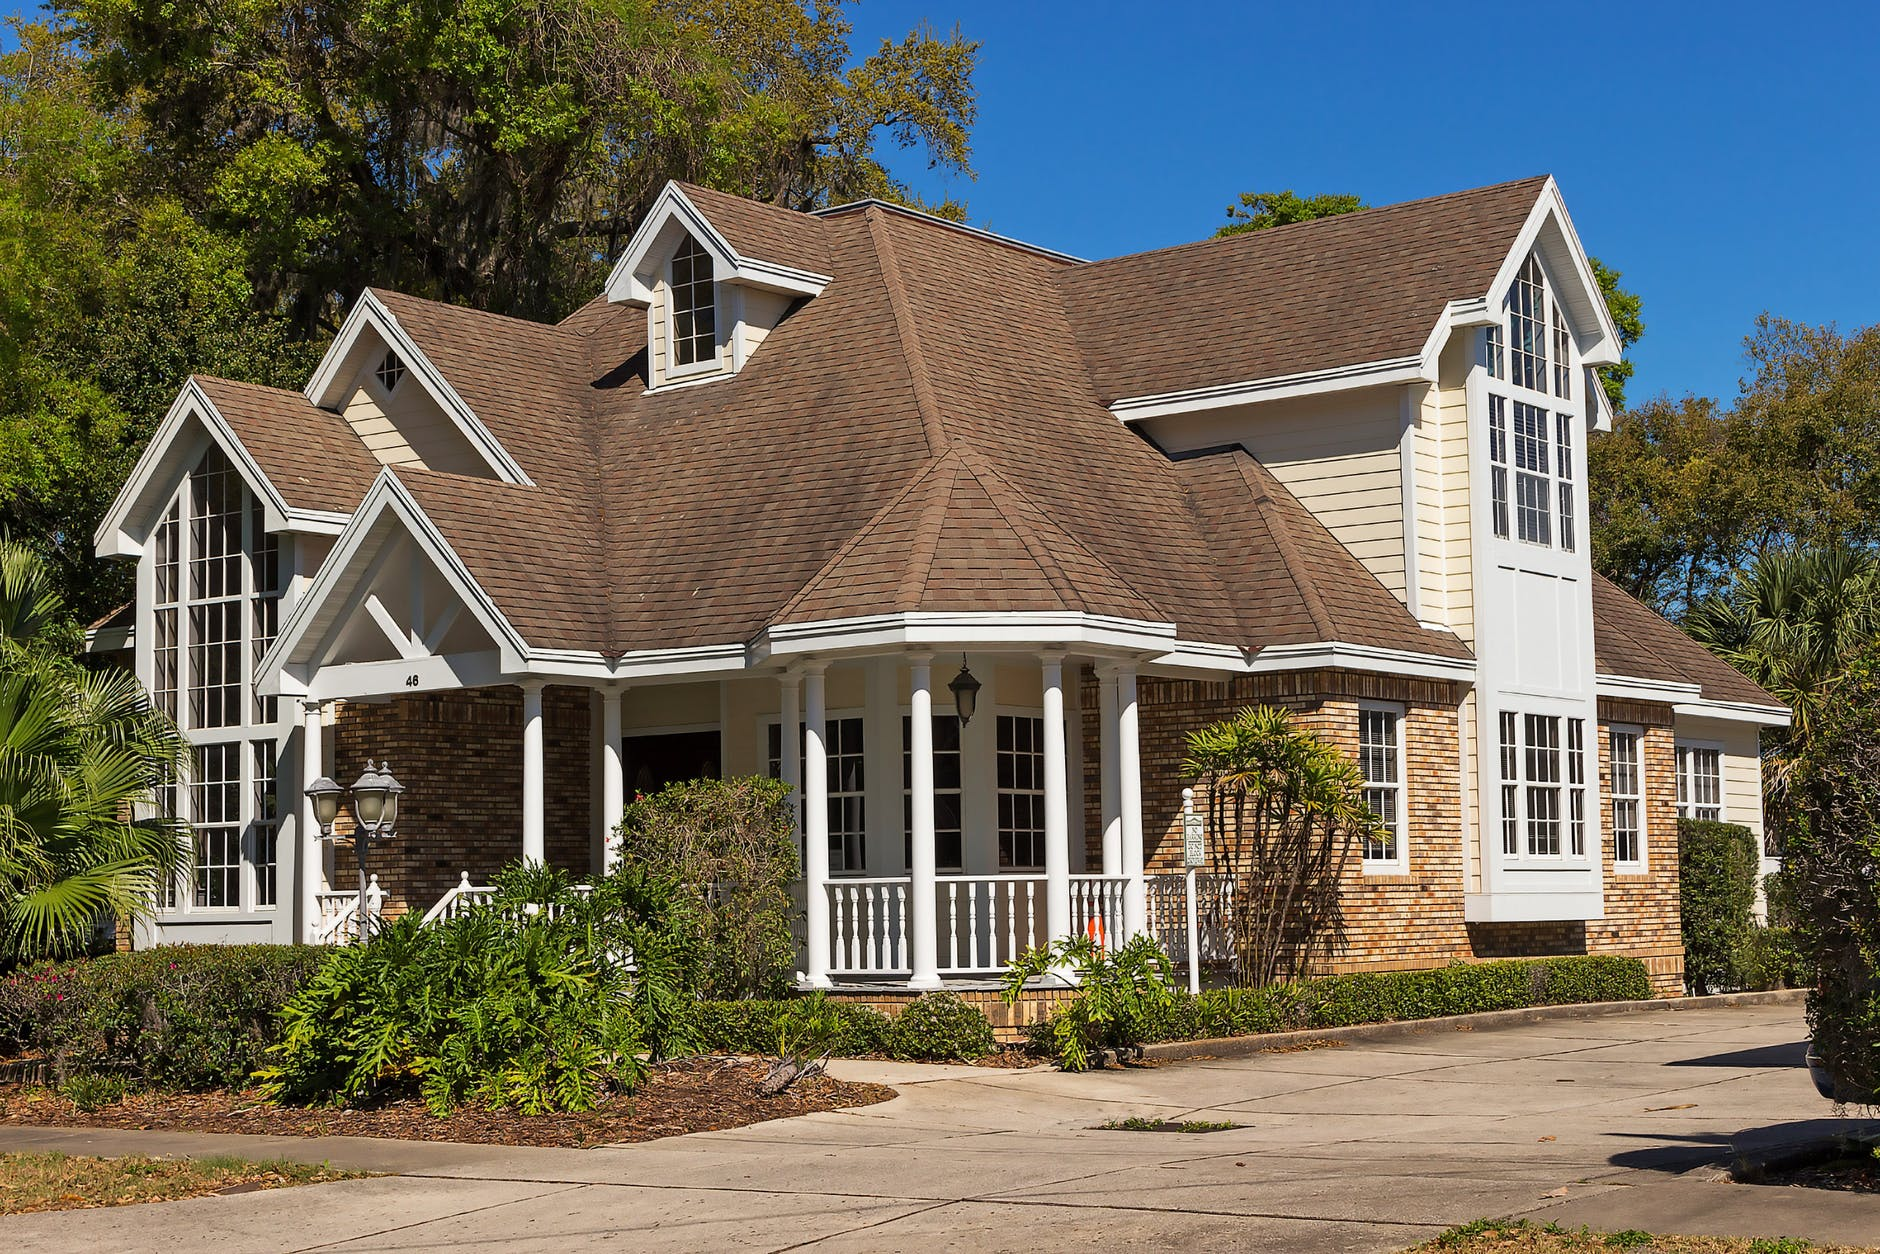 Home Insurance and Roof Leaks - Are You Covered